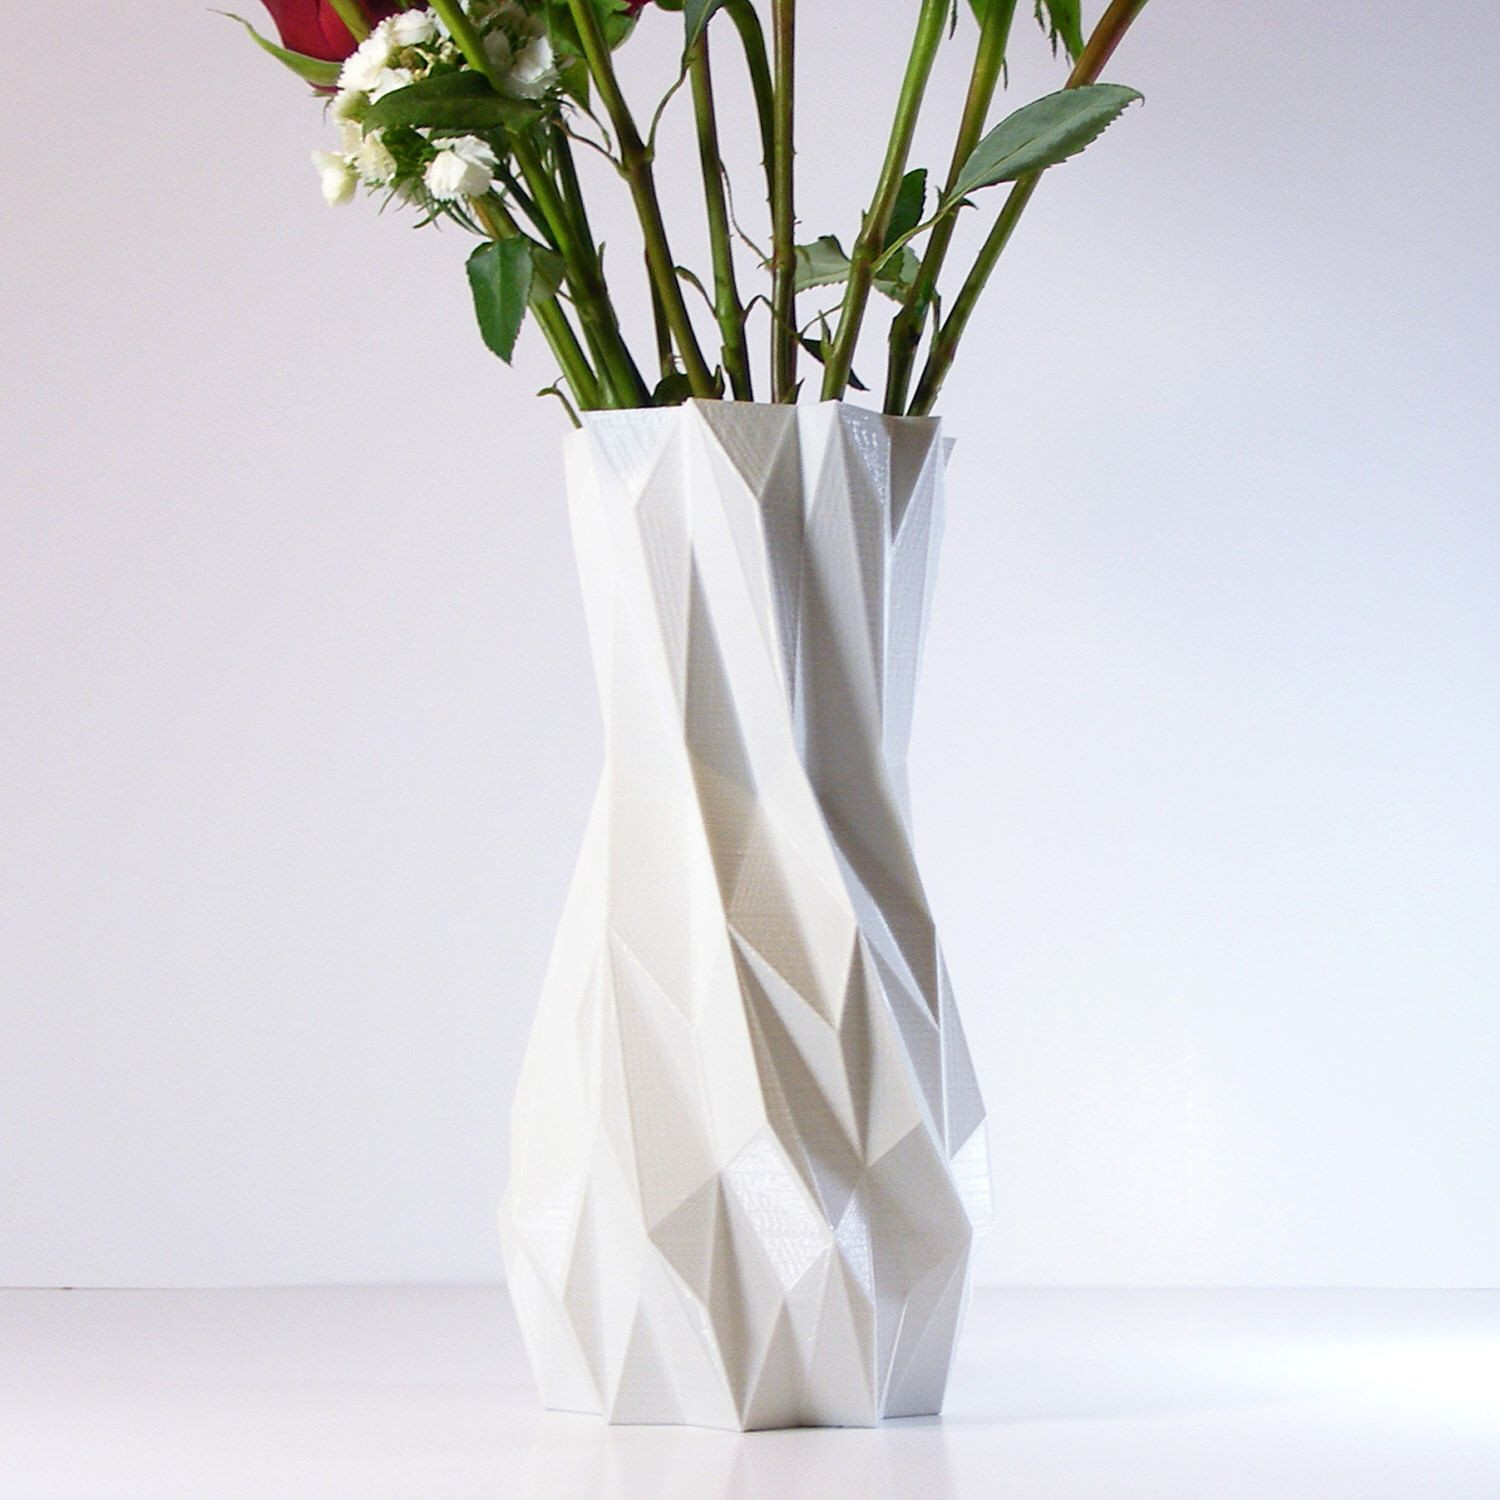 Cheap Geometric Vases Of 3d Printed White Vase Living Room Decor Modern Tall Vase Modern In 3d Printed White Vase Living Room Decor Modern Tall Vase Modern Geometric Vase Room Decor Tall Vases and White Vases